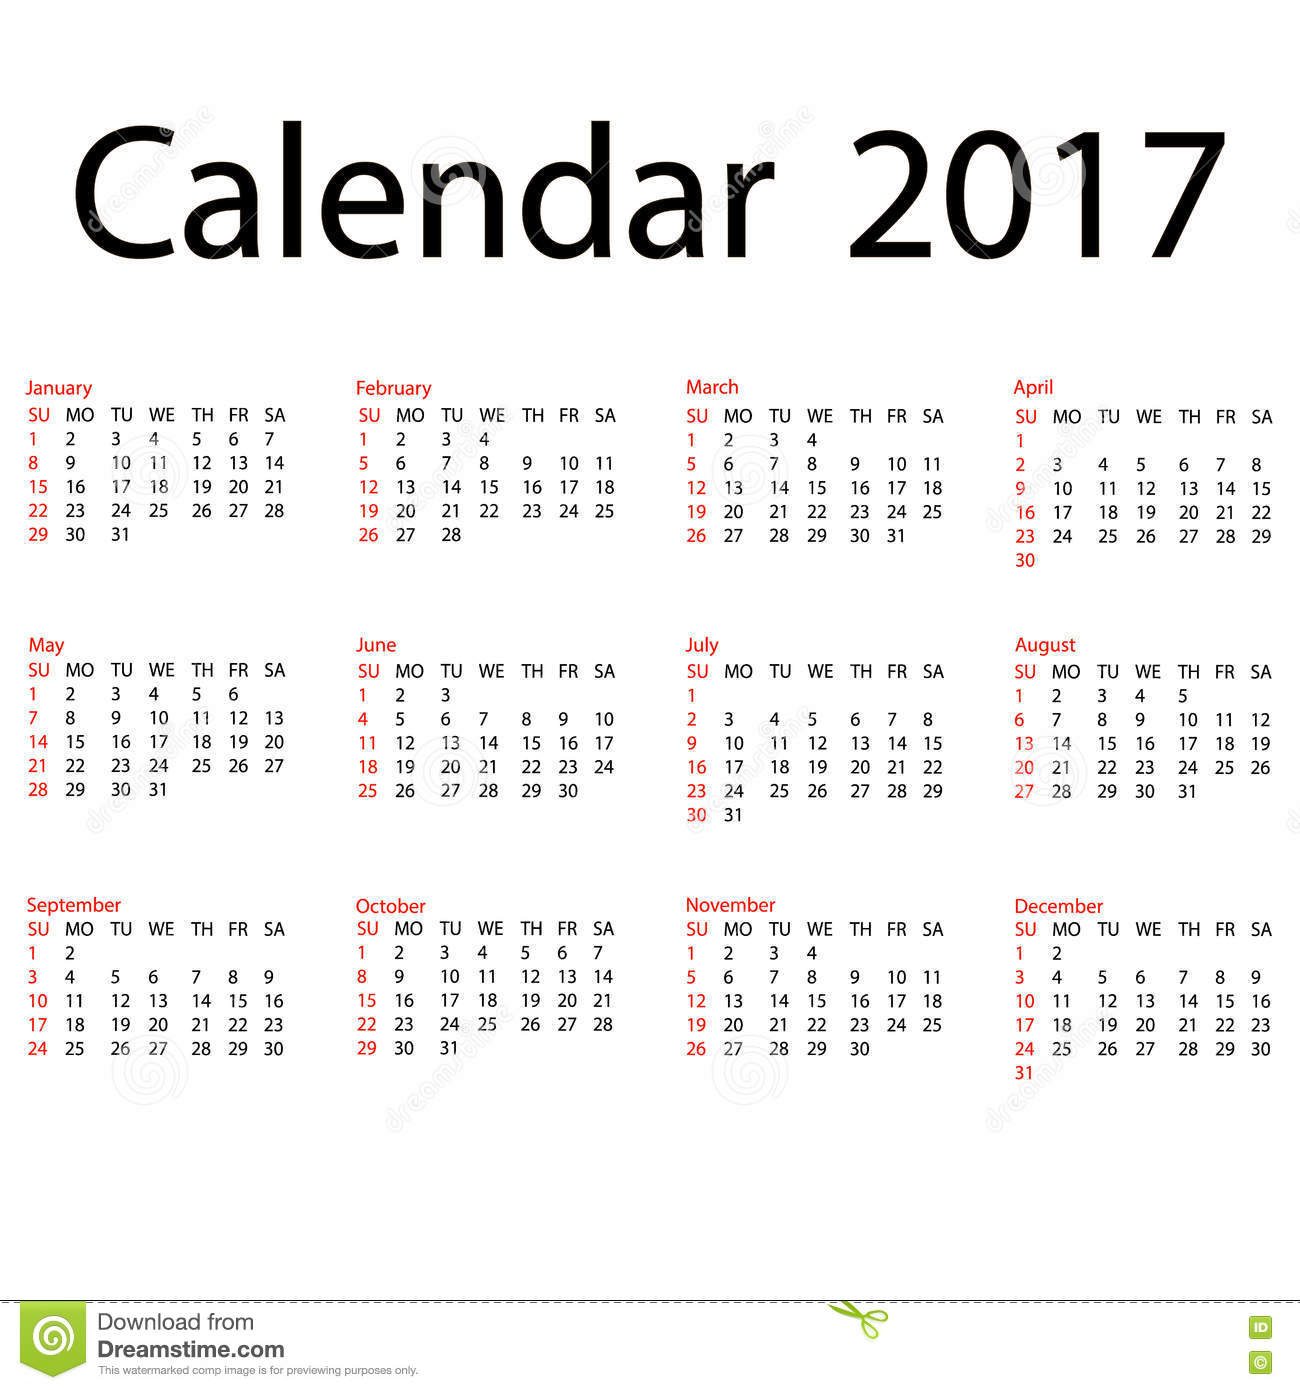 2017 calendar template first day sunday illustration in format